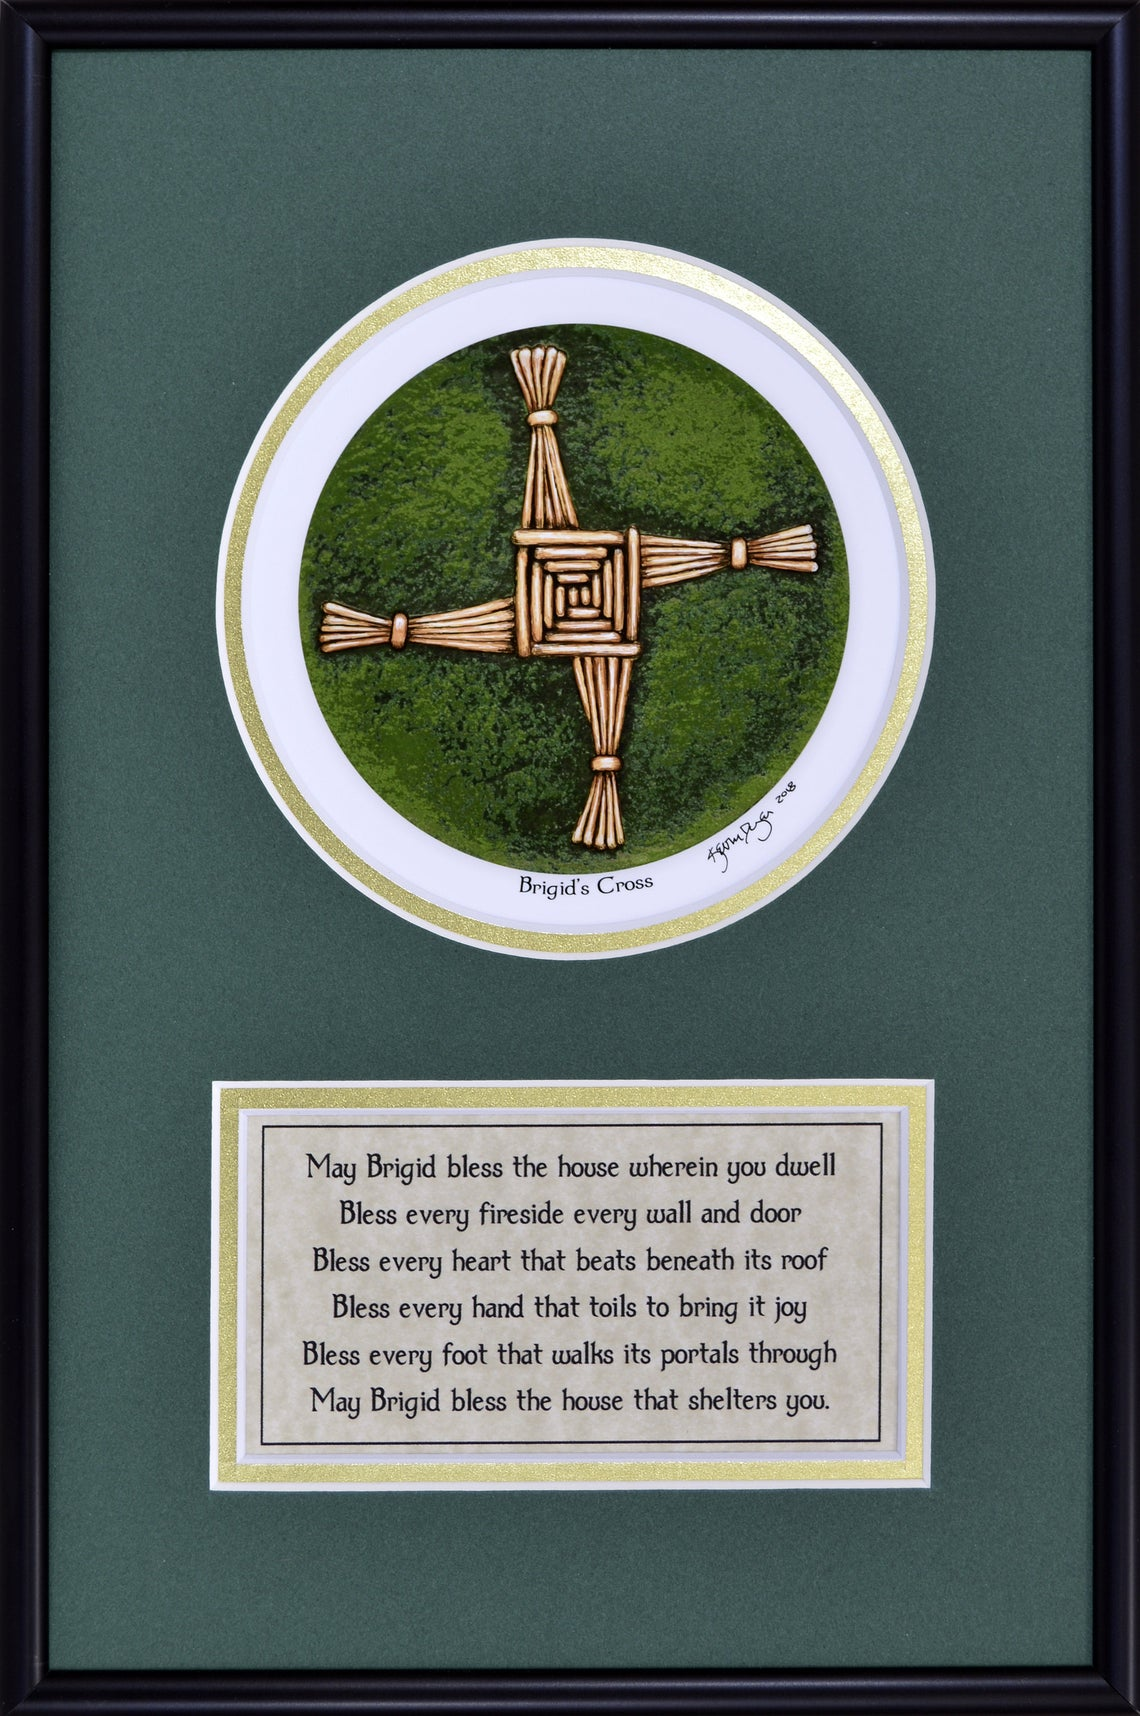 Framed print of a reed cross with a text box beneath